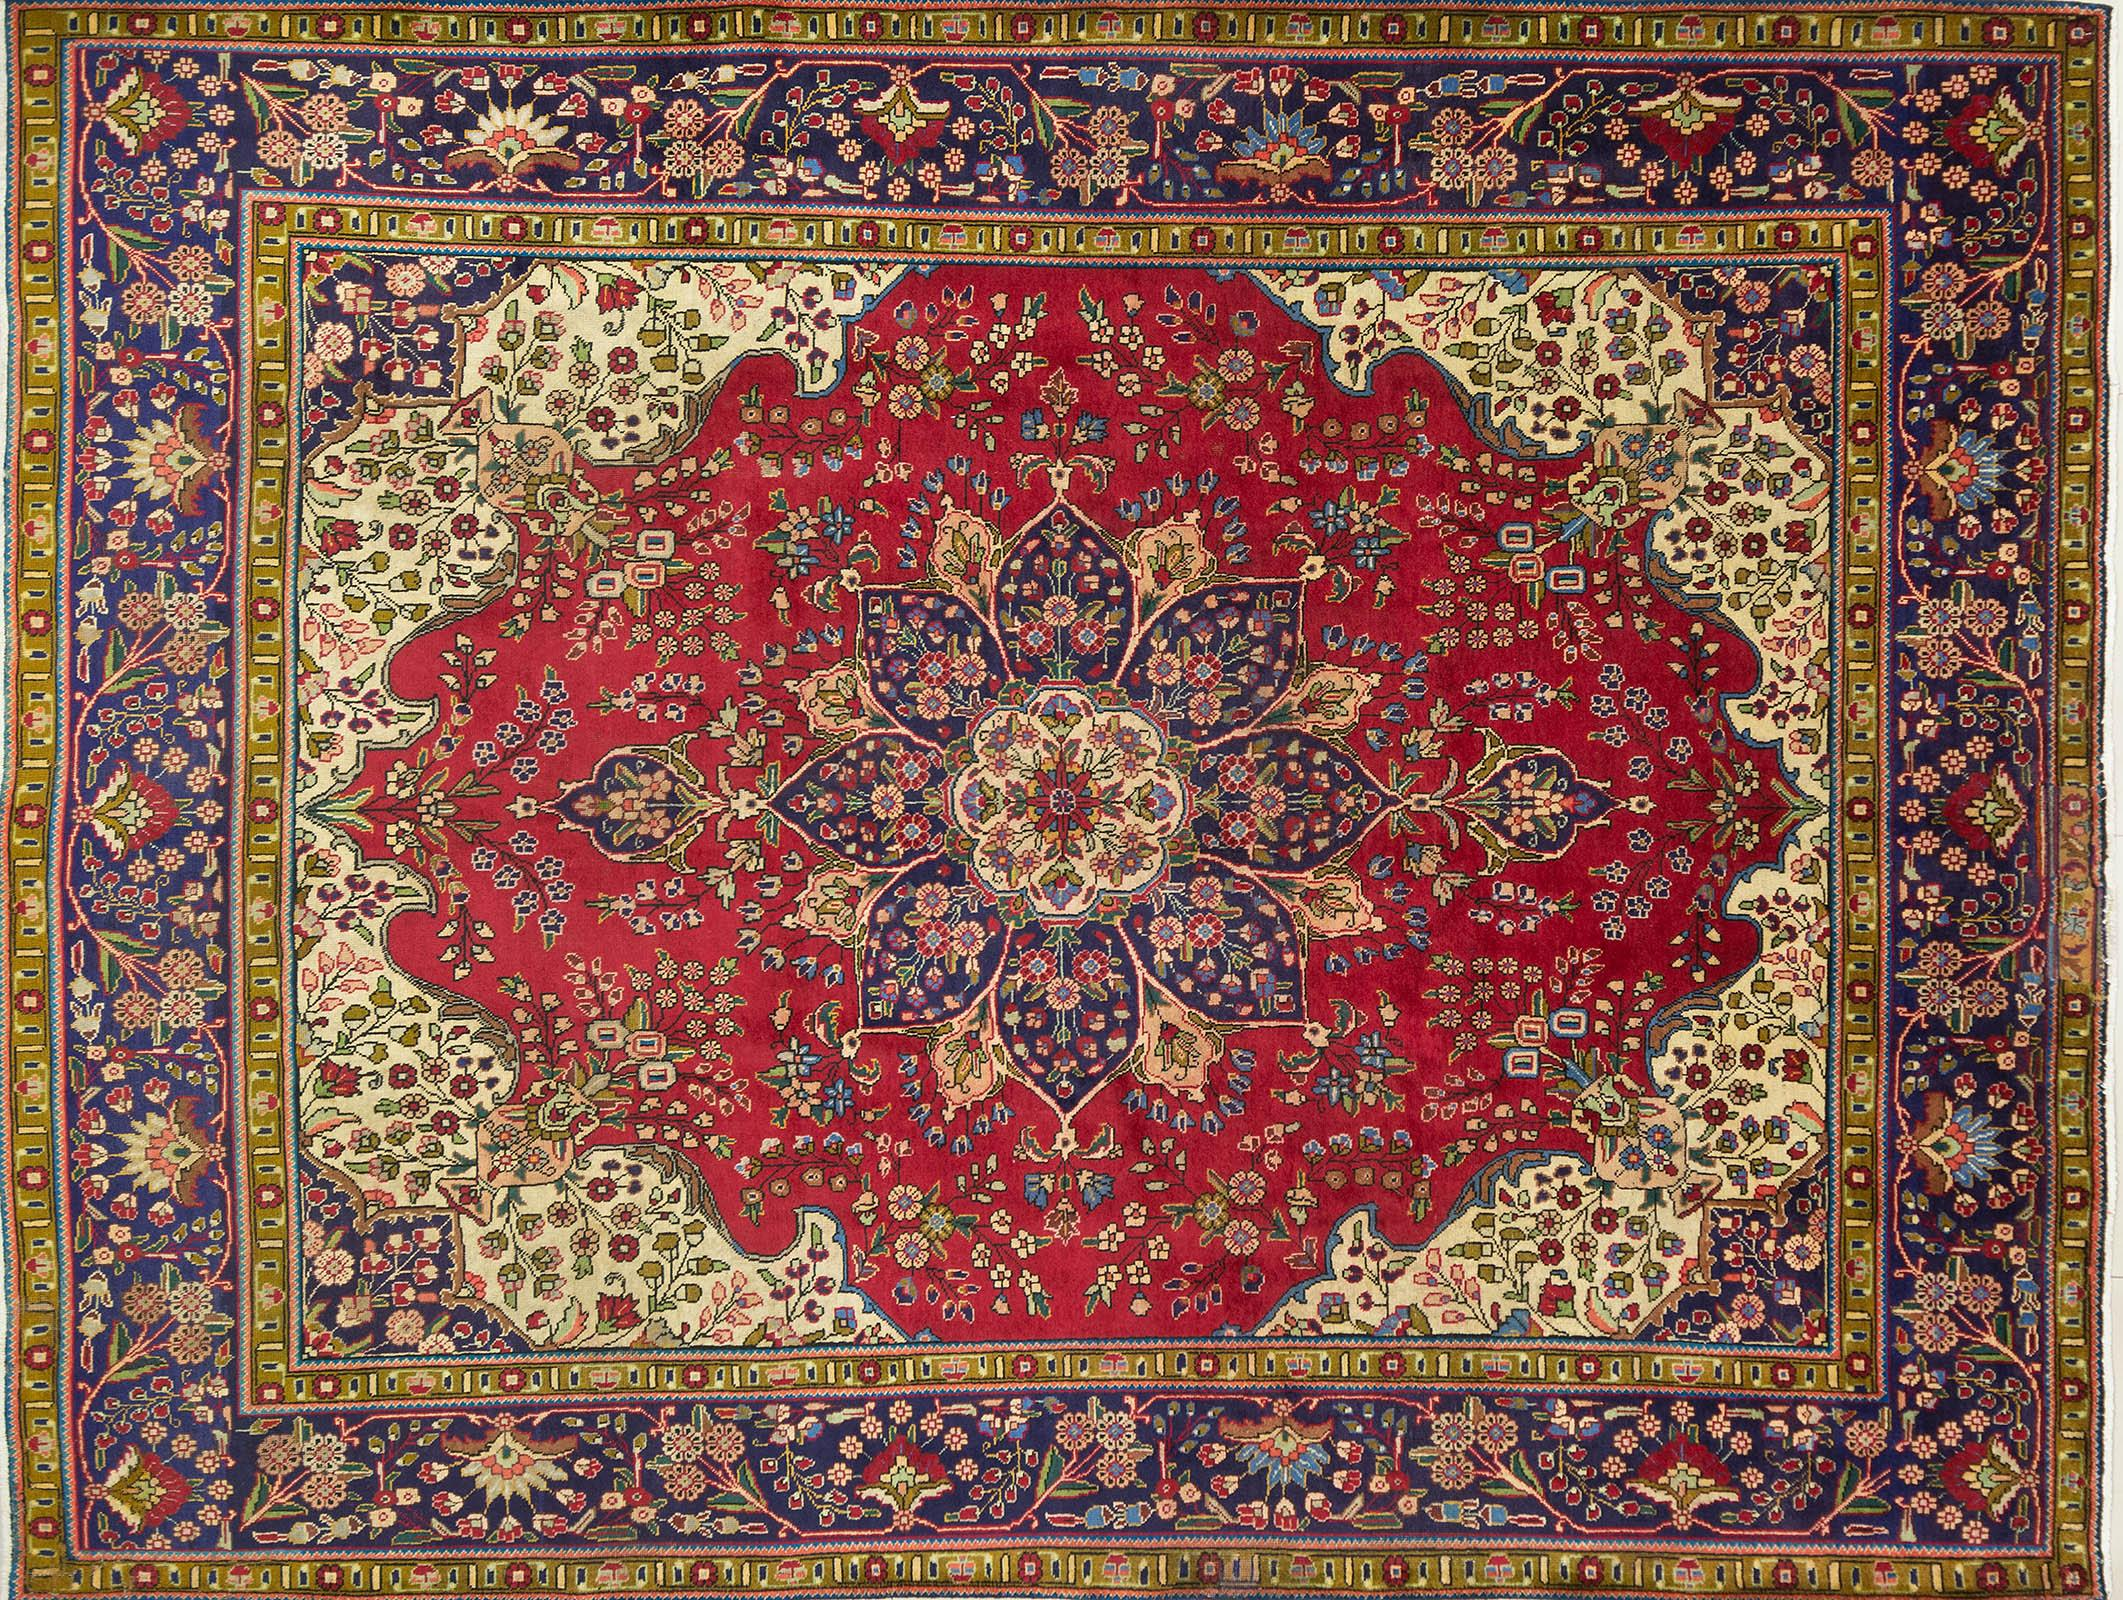 A Persian Hand Knotted Tabriz Carpet, 385 x 295